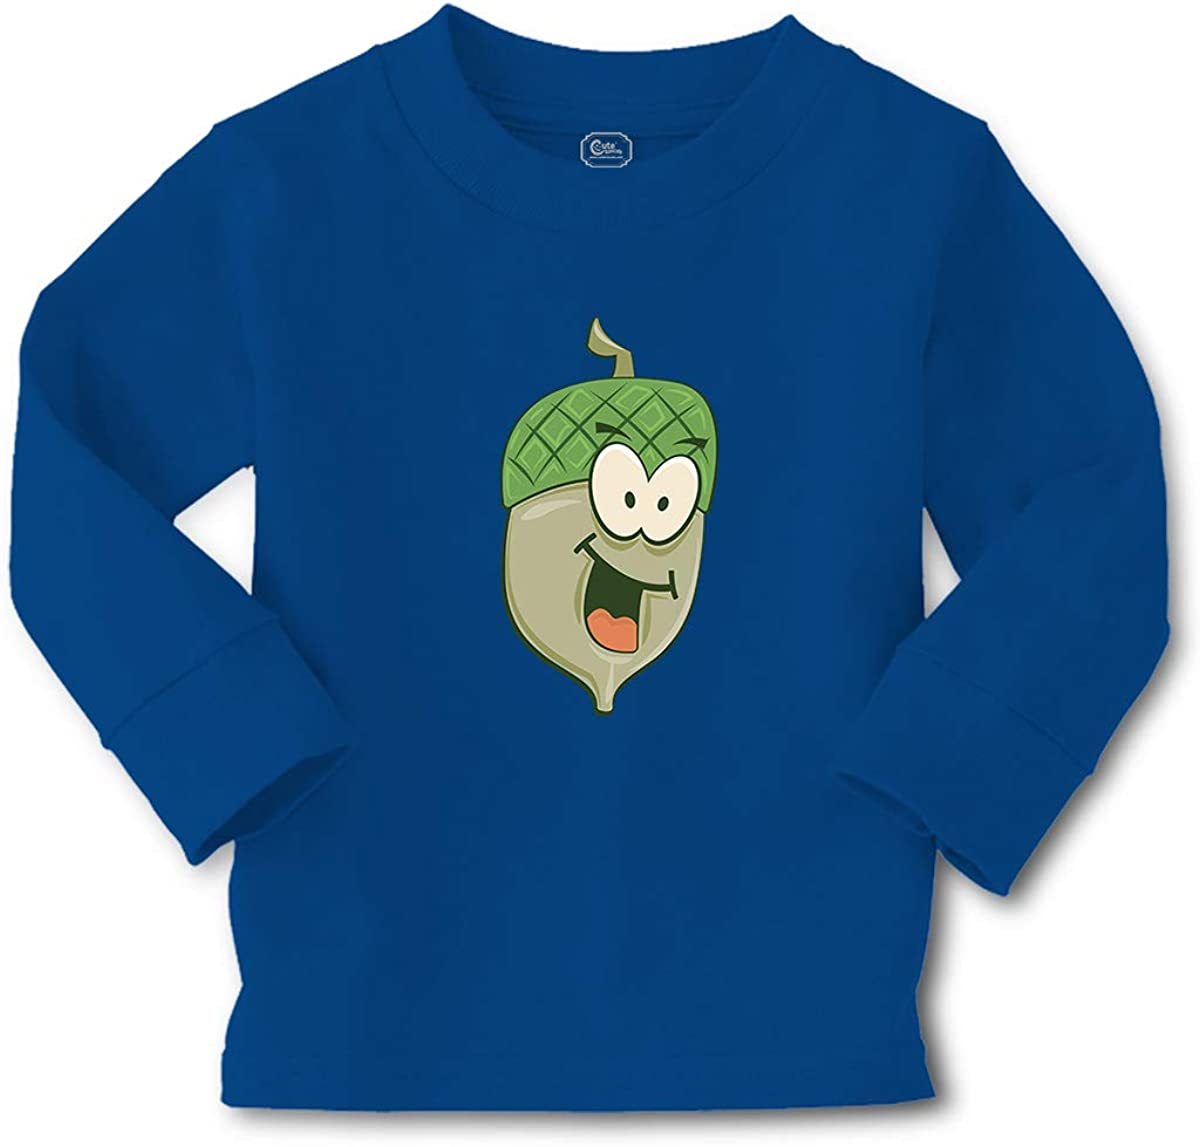 Kids Long Sleeve T Shirt Smiling Cartoon Acorn Cotton Boy & Girl Clothes Funny Graphic Tee Royal Blue Design Only 4T